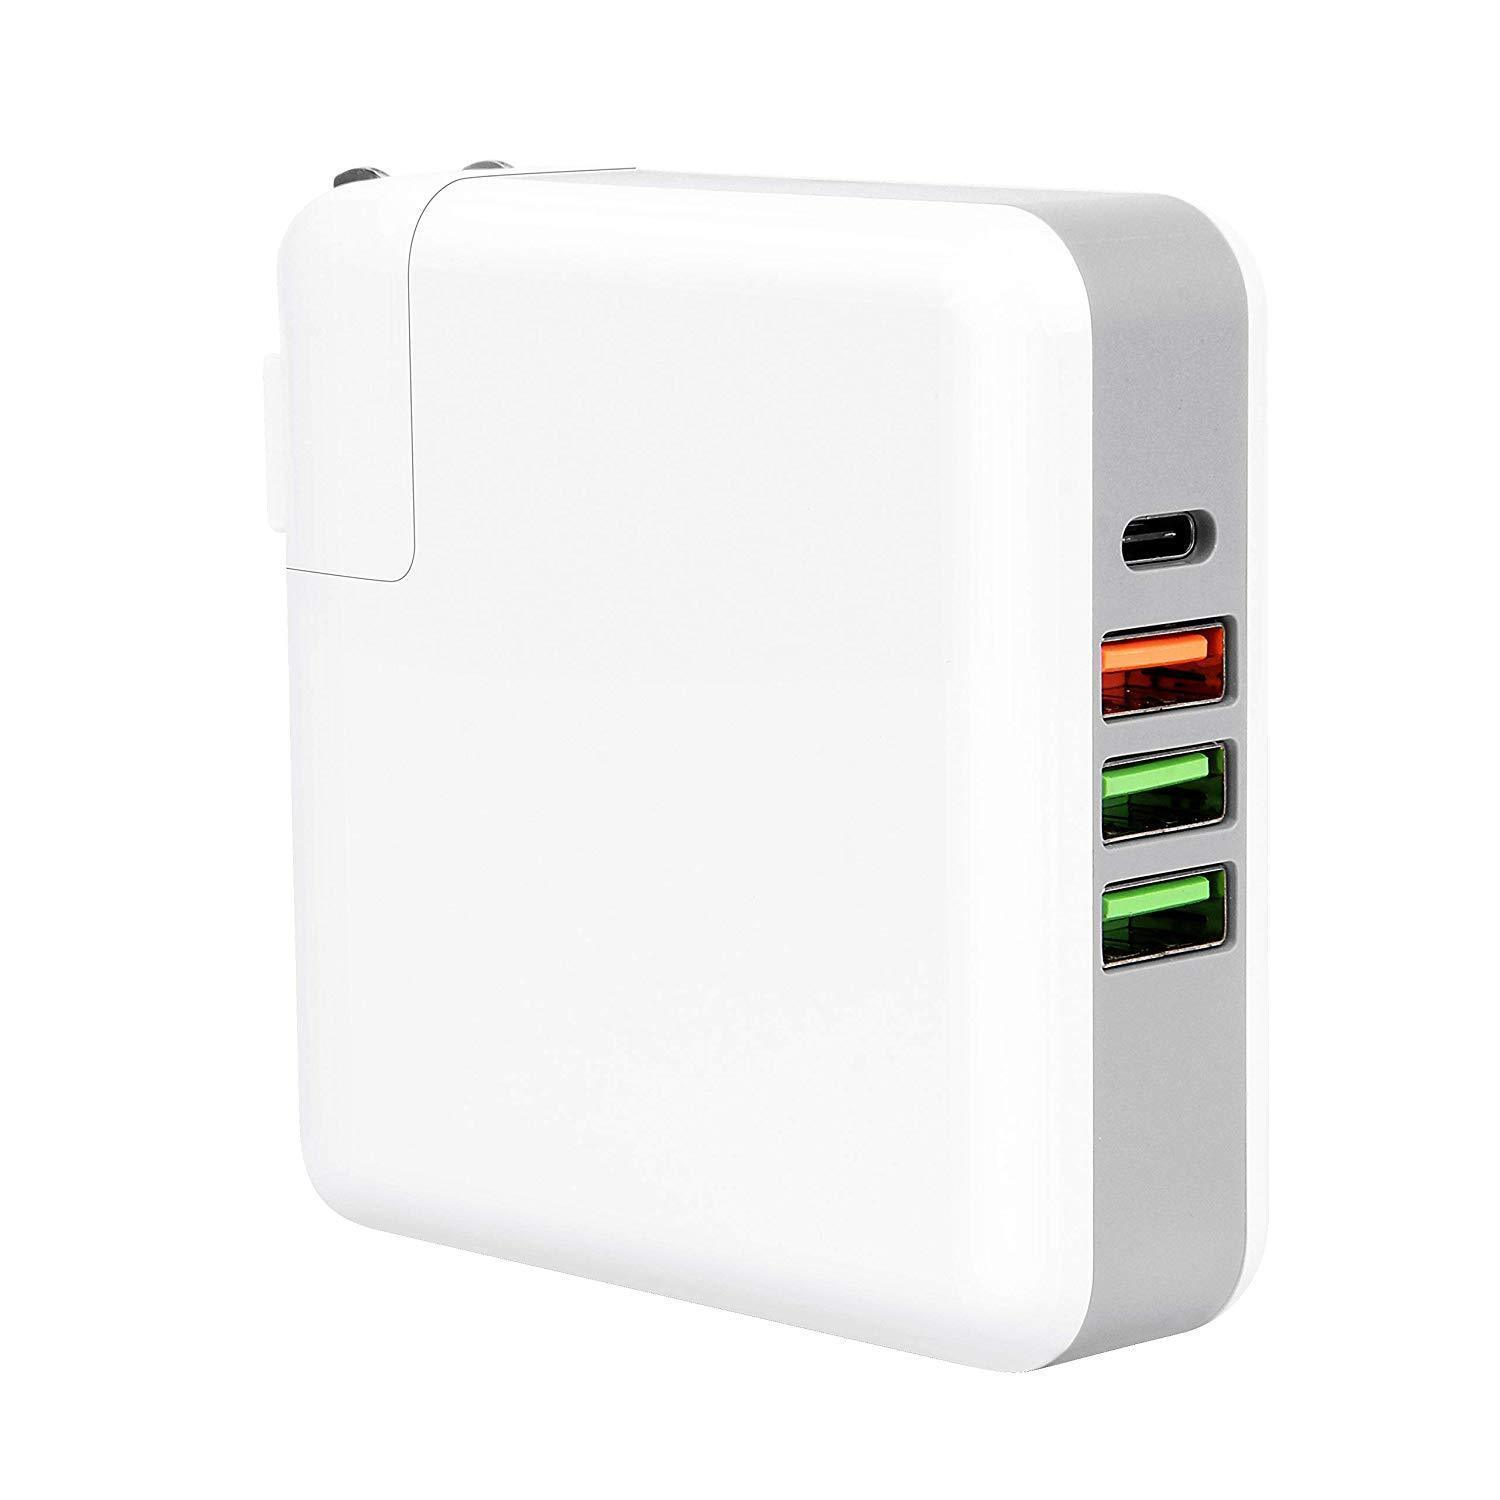 UrbanX 61W Type C PD Wall Charger with QC 3.0 Port and Dual 2.4A USB Ports